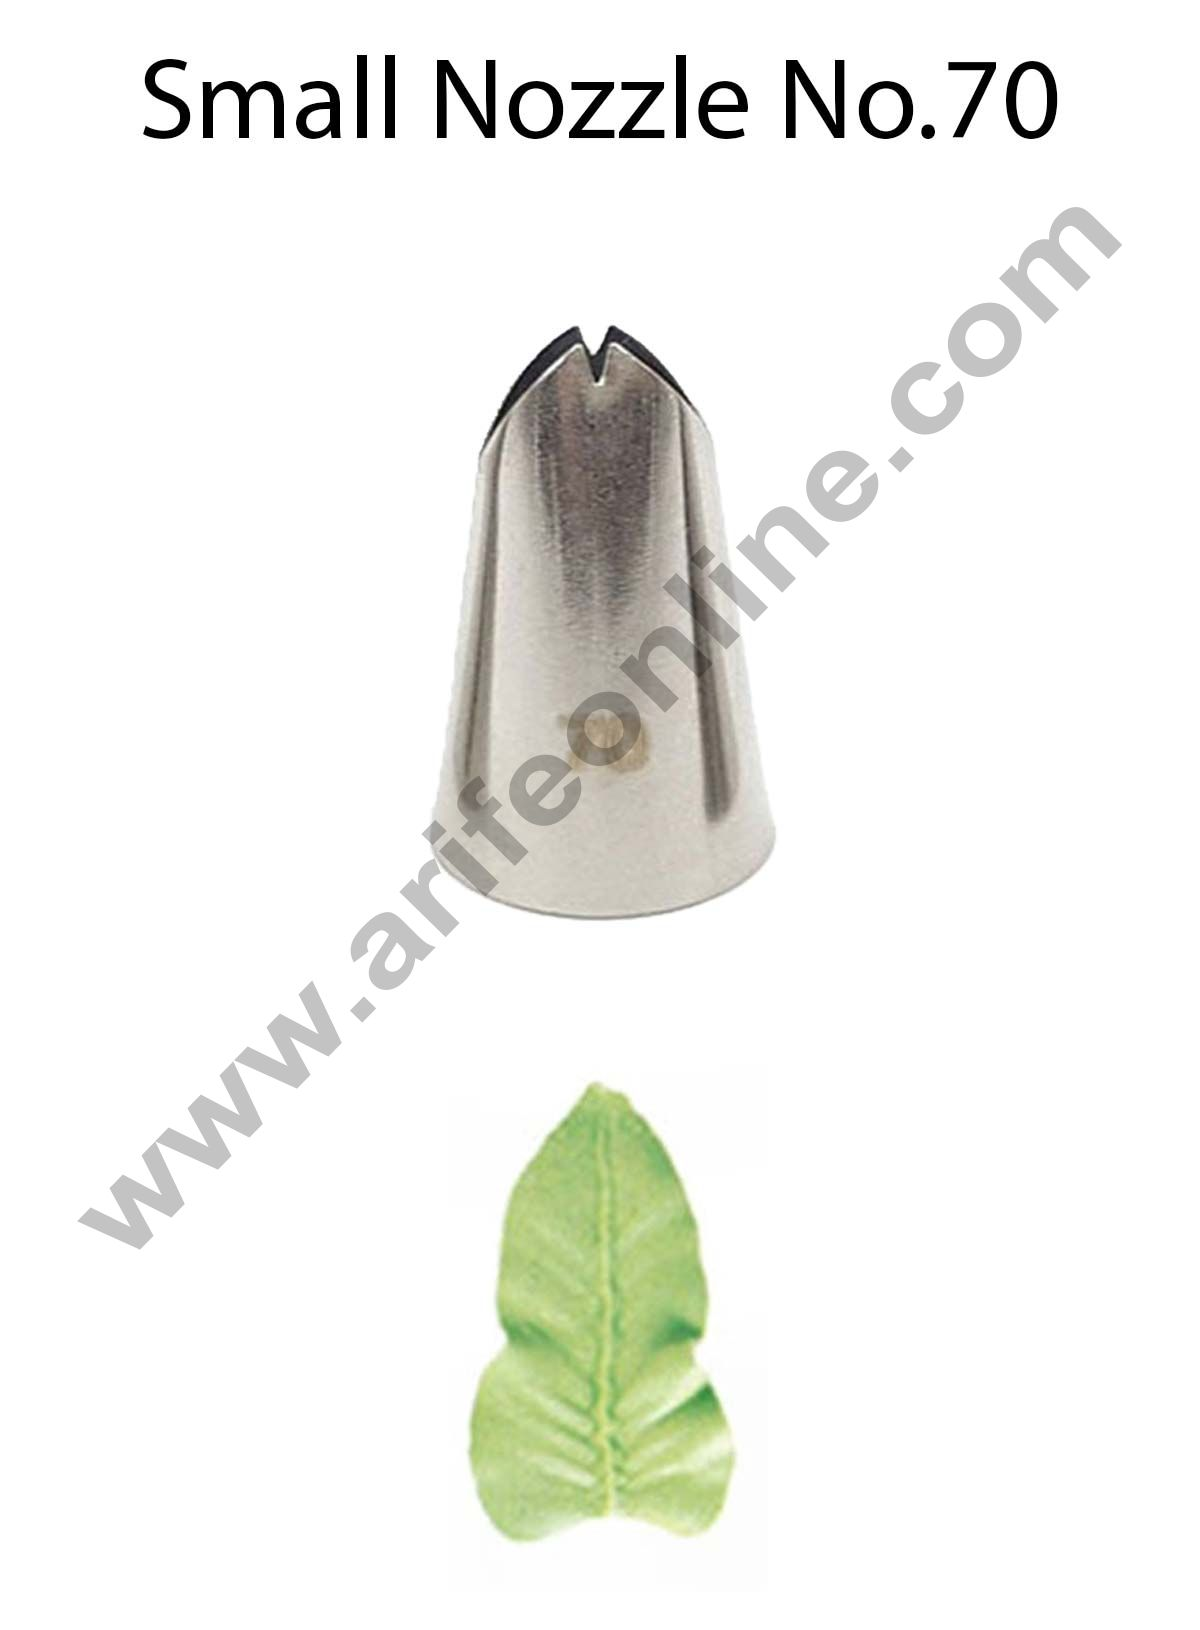 Cake Decor Small Nozzle - No. 70 Leaf Piping Nozzle